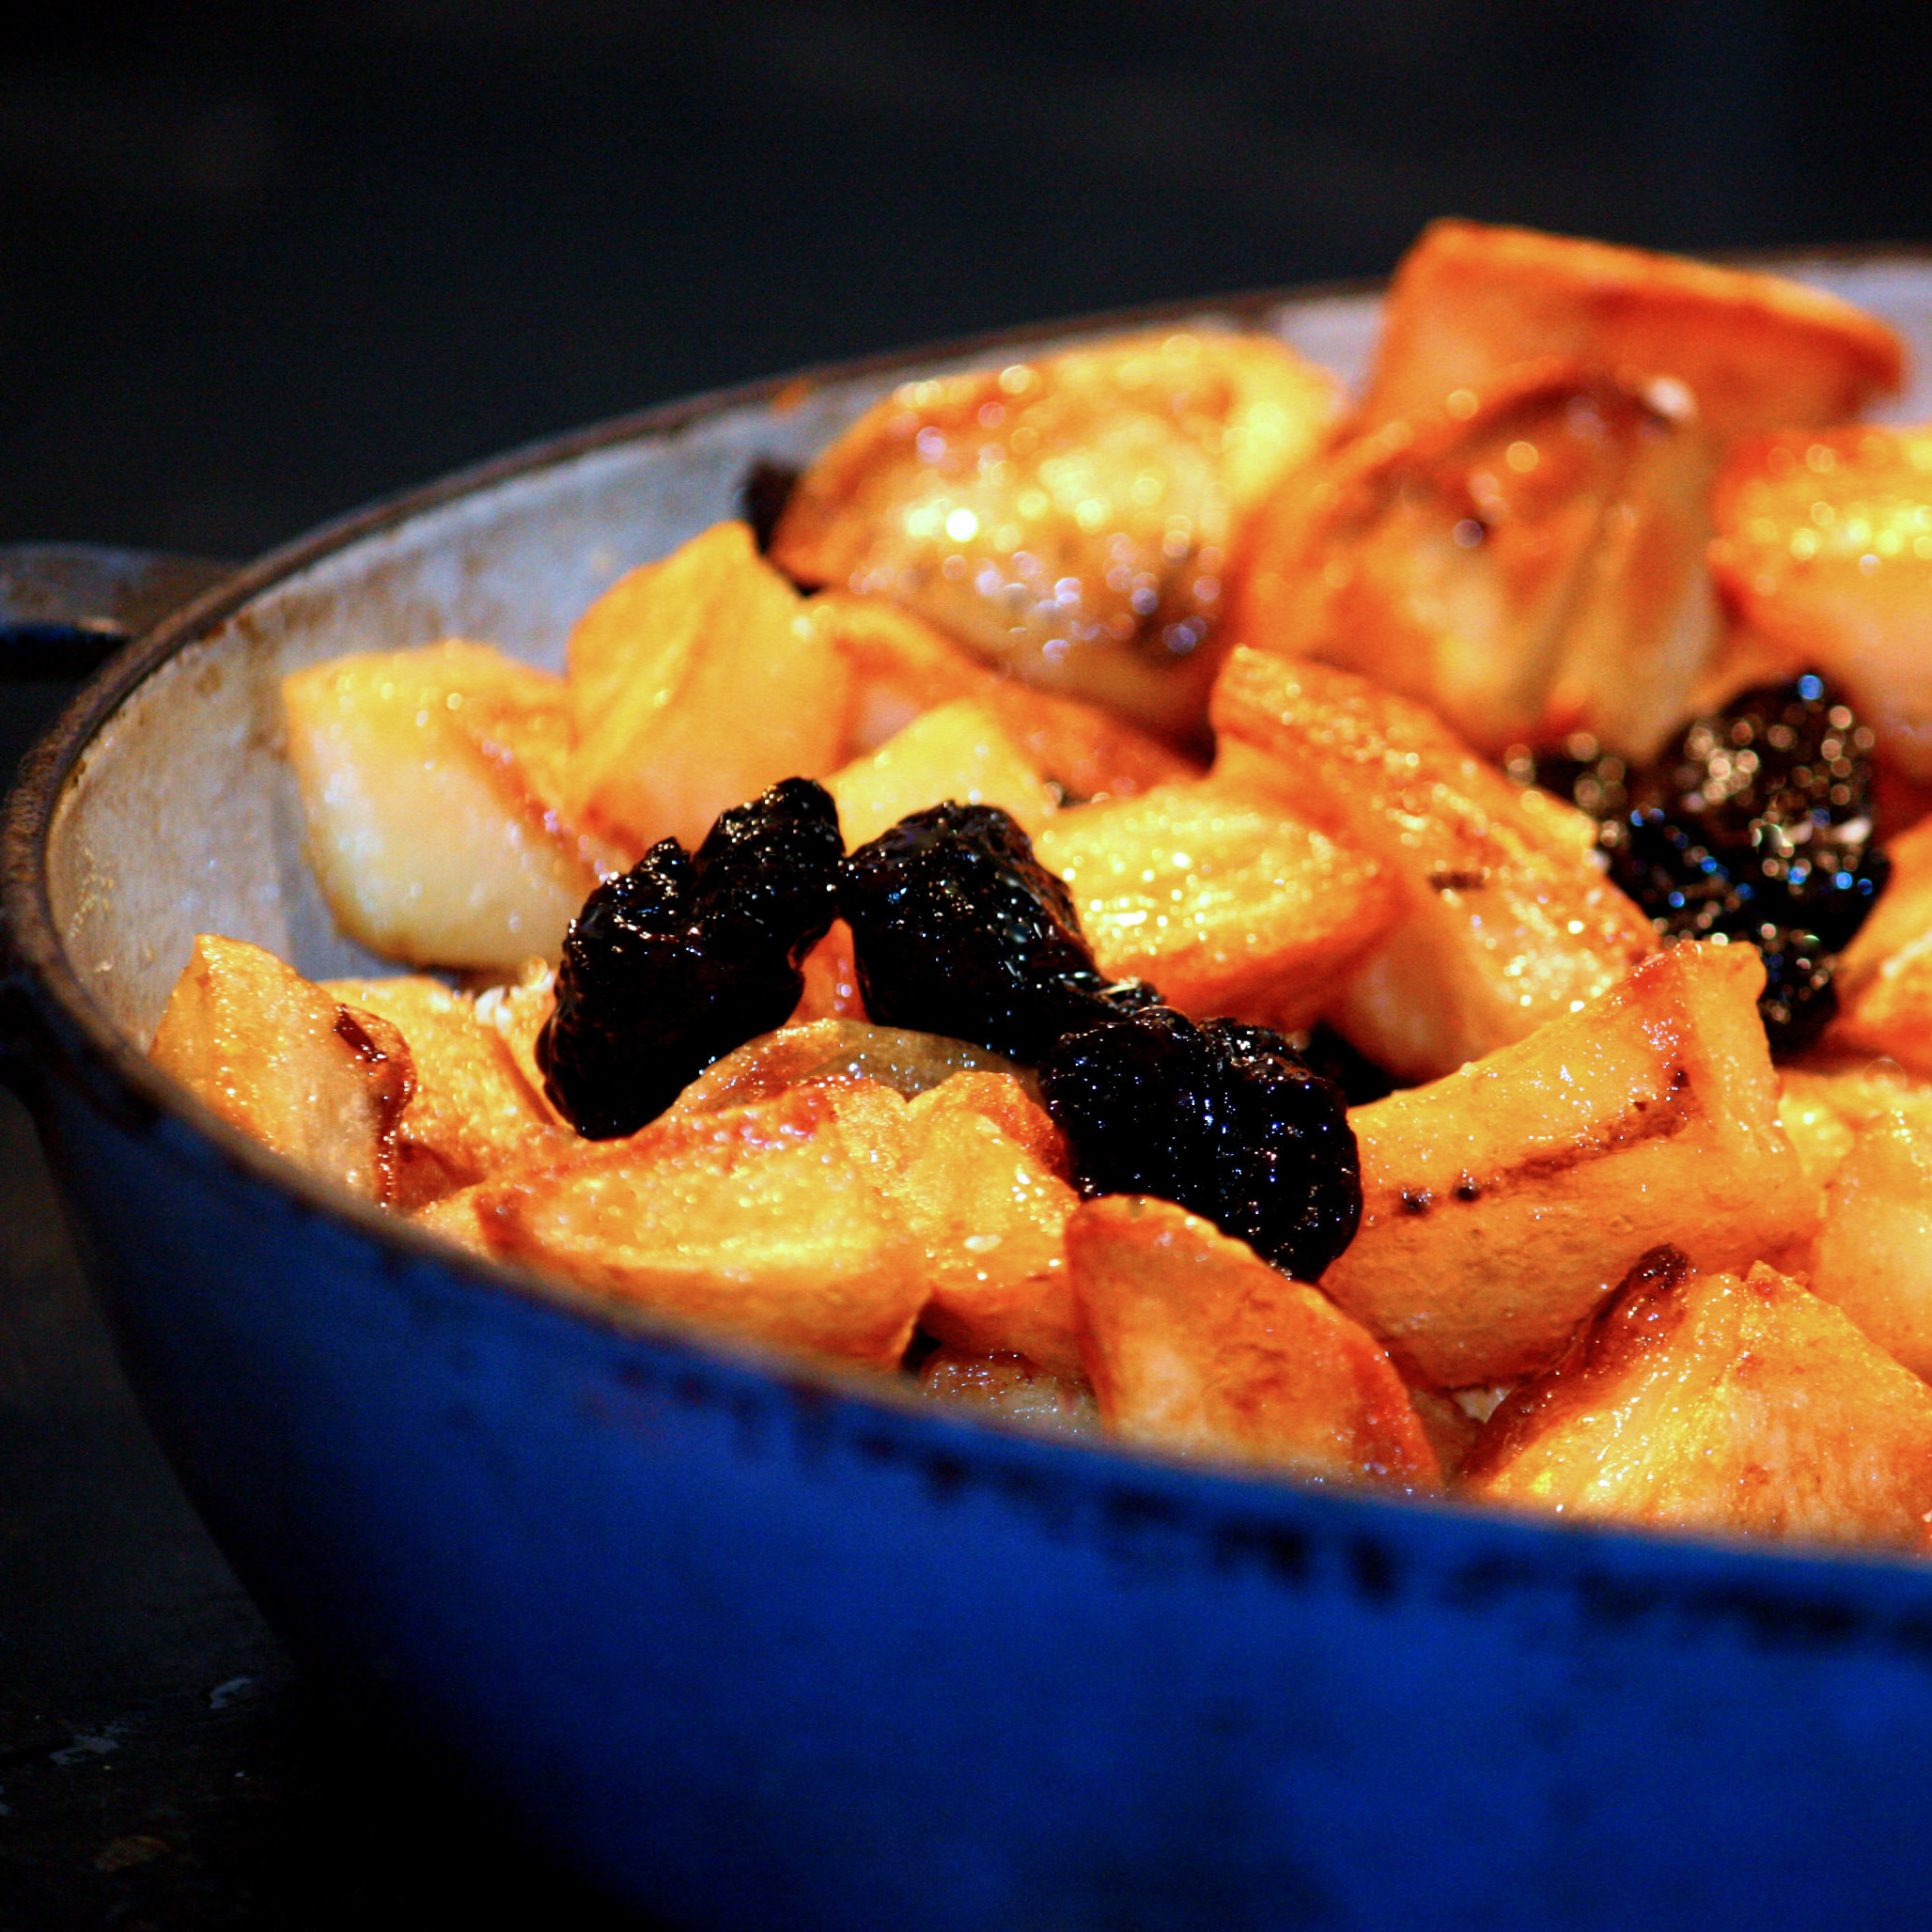 Roasted Potatoes With Caramel And Prunes